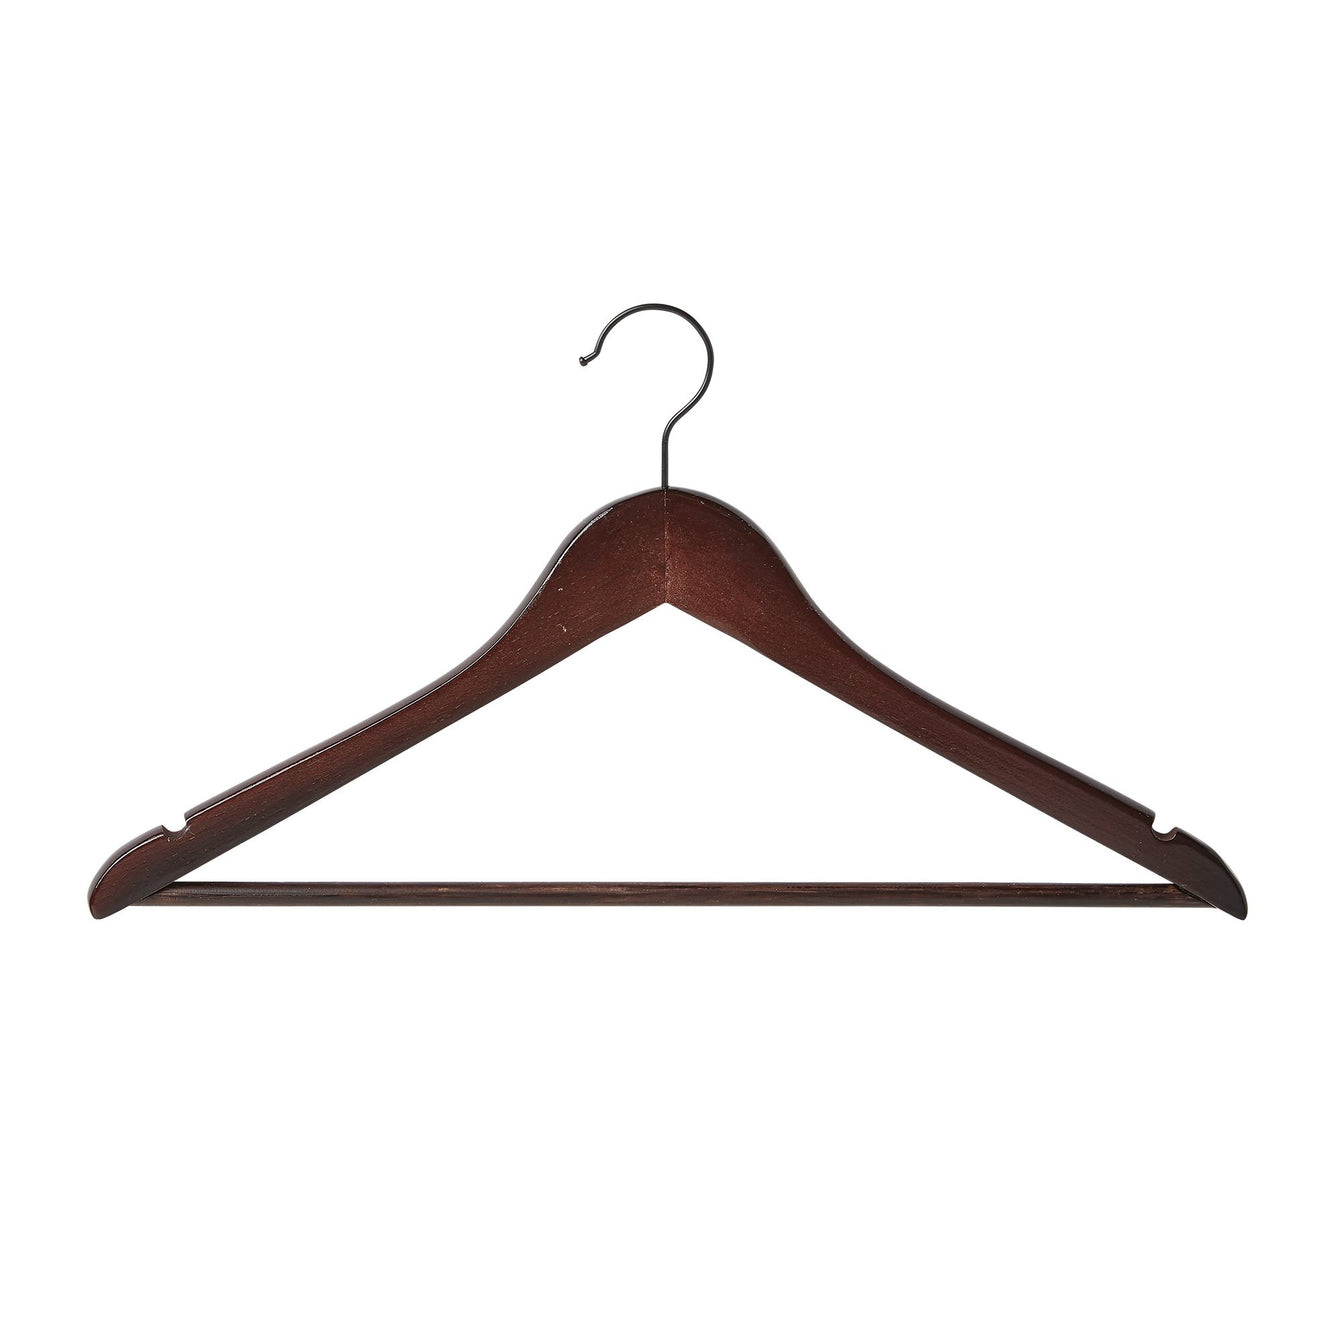 5 Pack Wood Contoured Profile Suit Hanger - Espresso - Style 4095